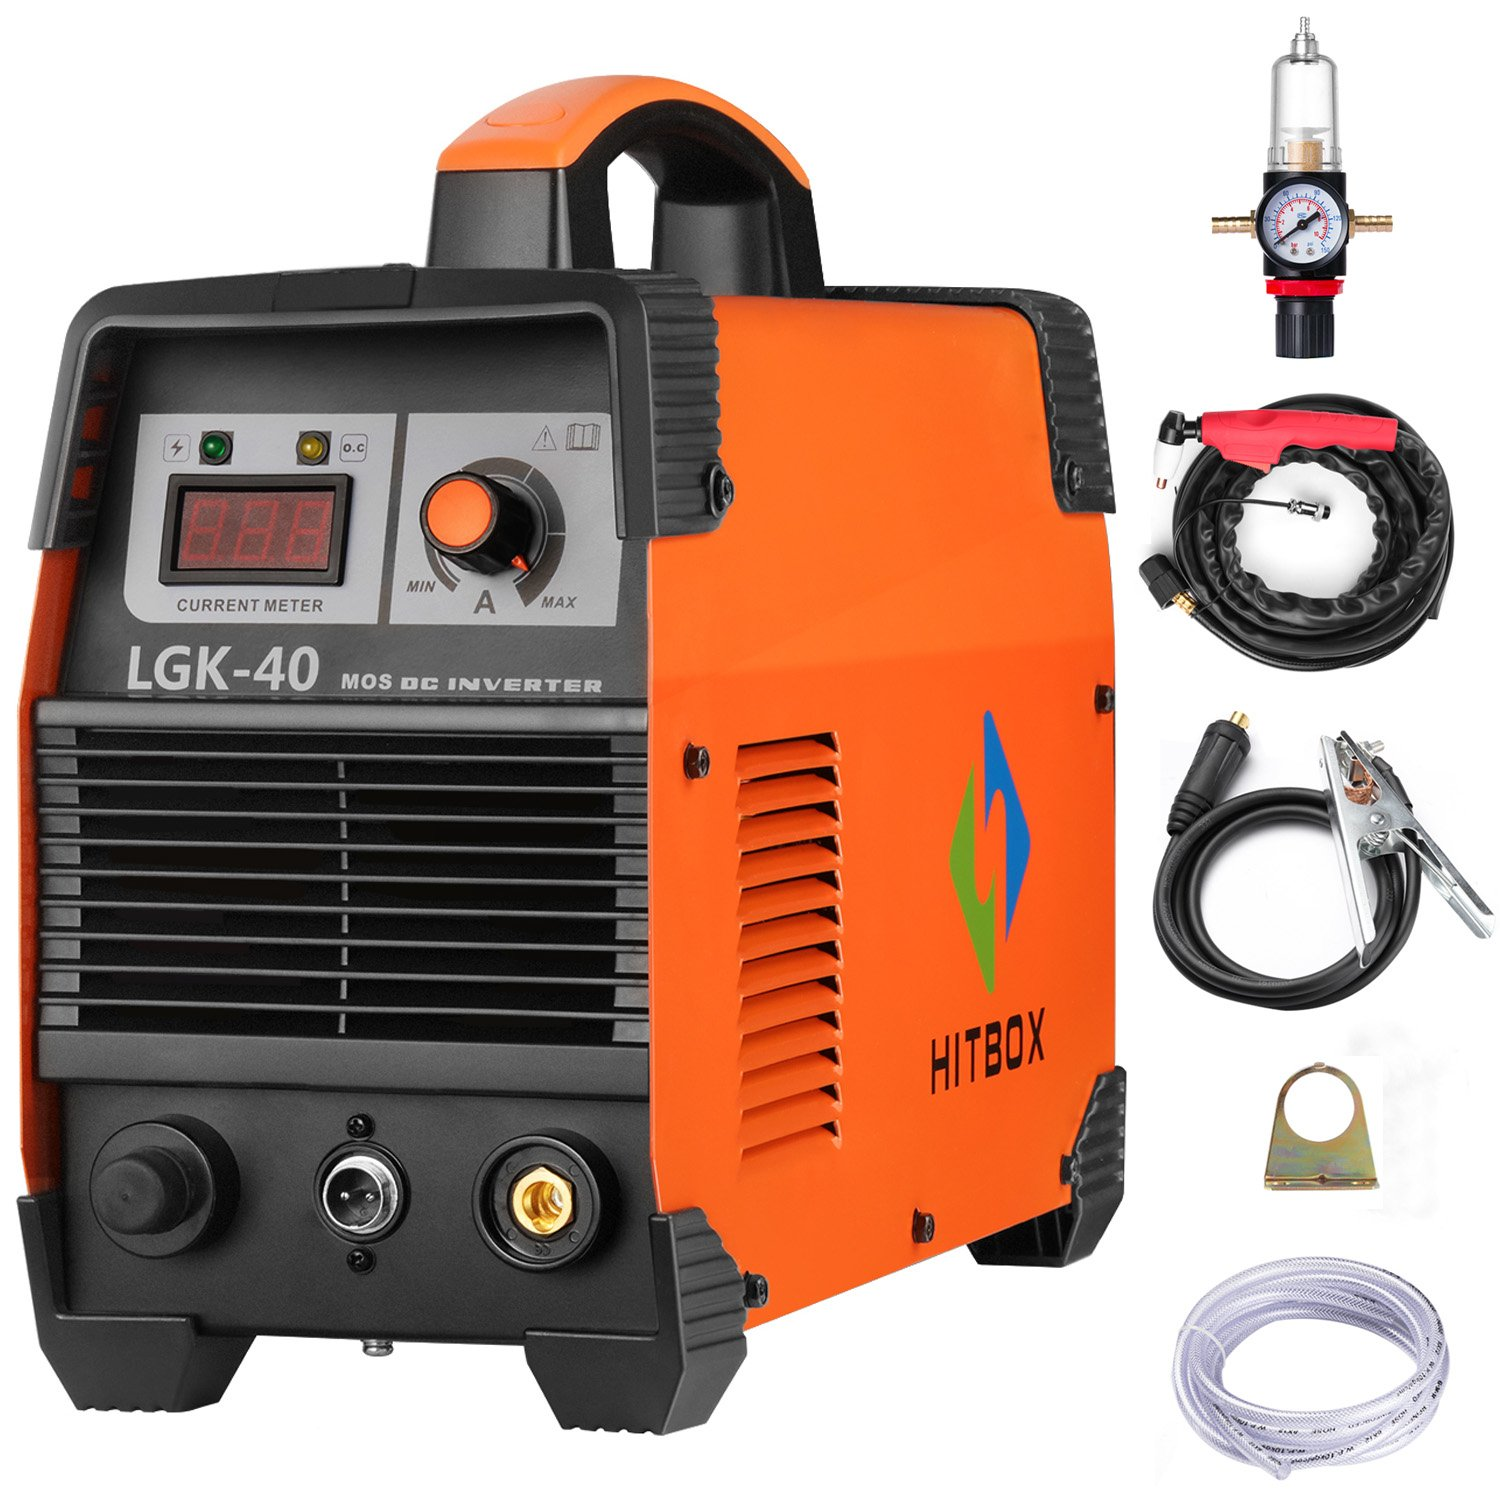 Top 10 Best Plasma Cutters